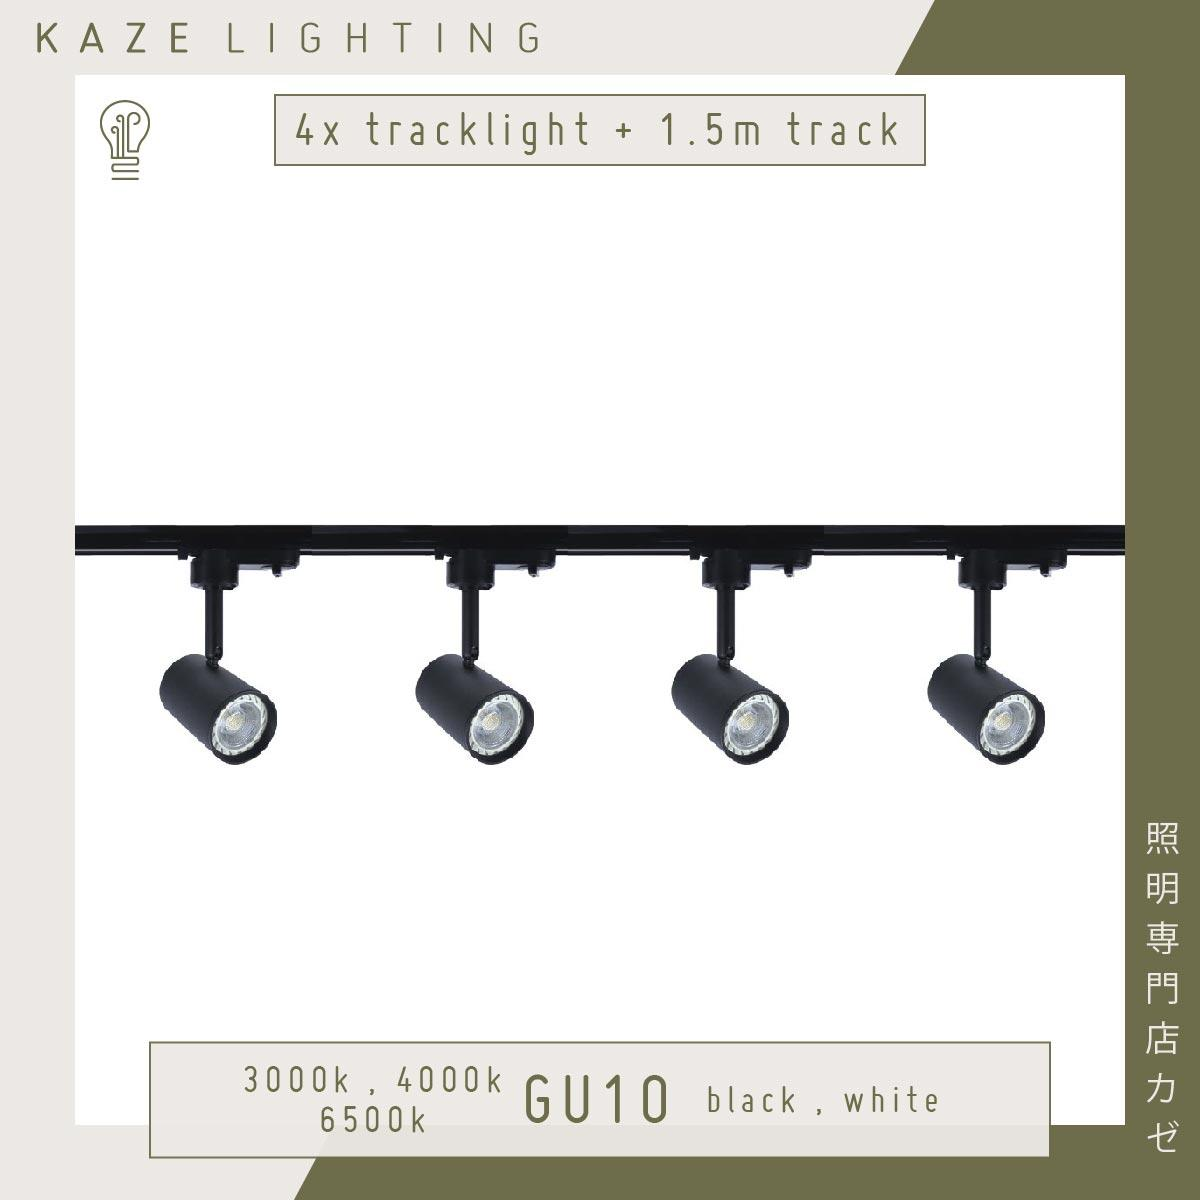 LED GU10 Track Light 7w (803) x4 + 1.5m track